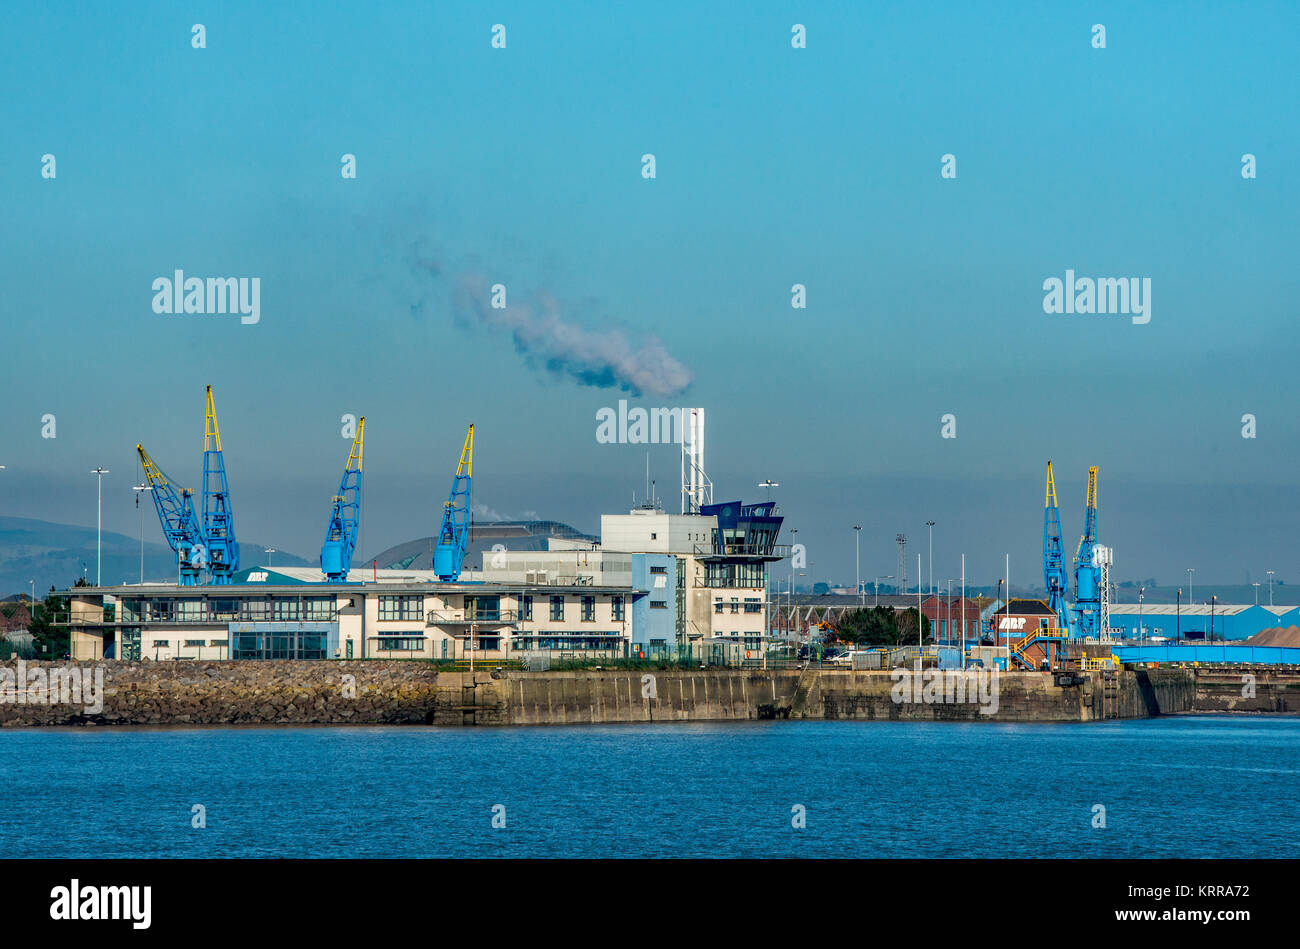 The entrance to Cardiff Docks, south Wales - Stock Image